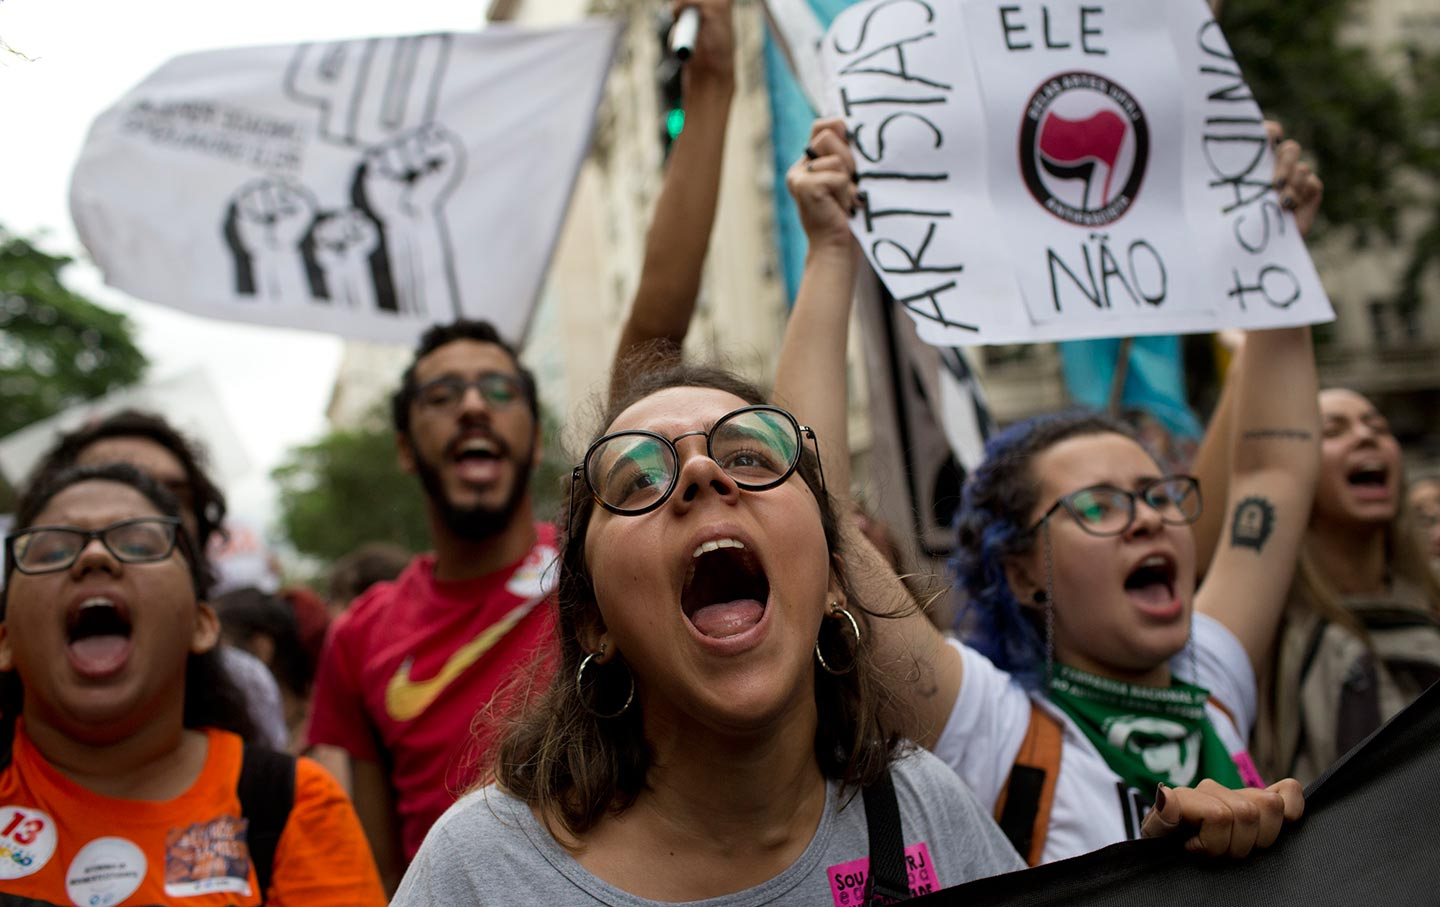 thenation.com - Education in the Crosshairs in Bolsonaro's Brazil